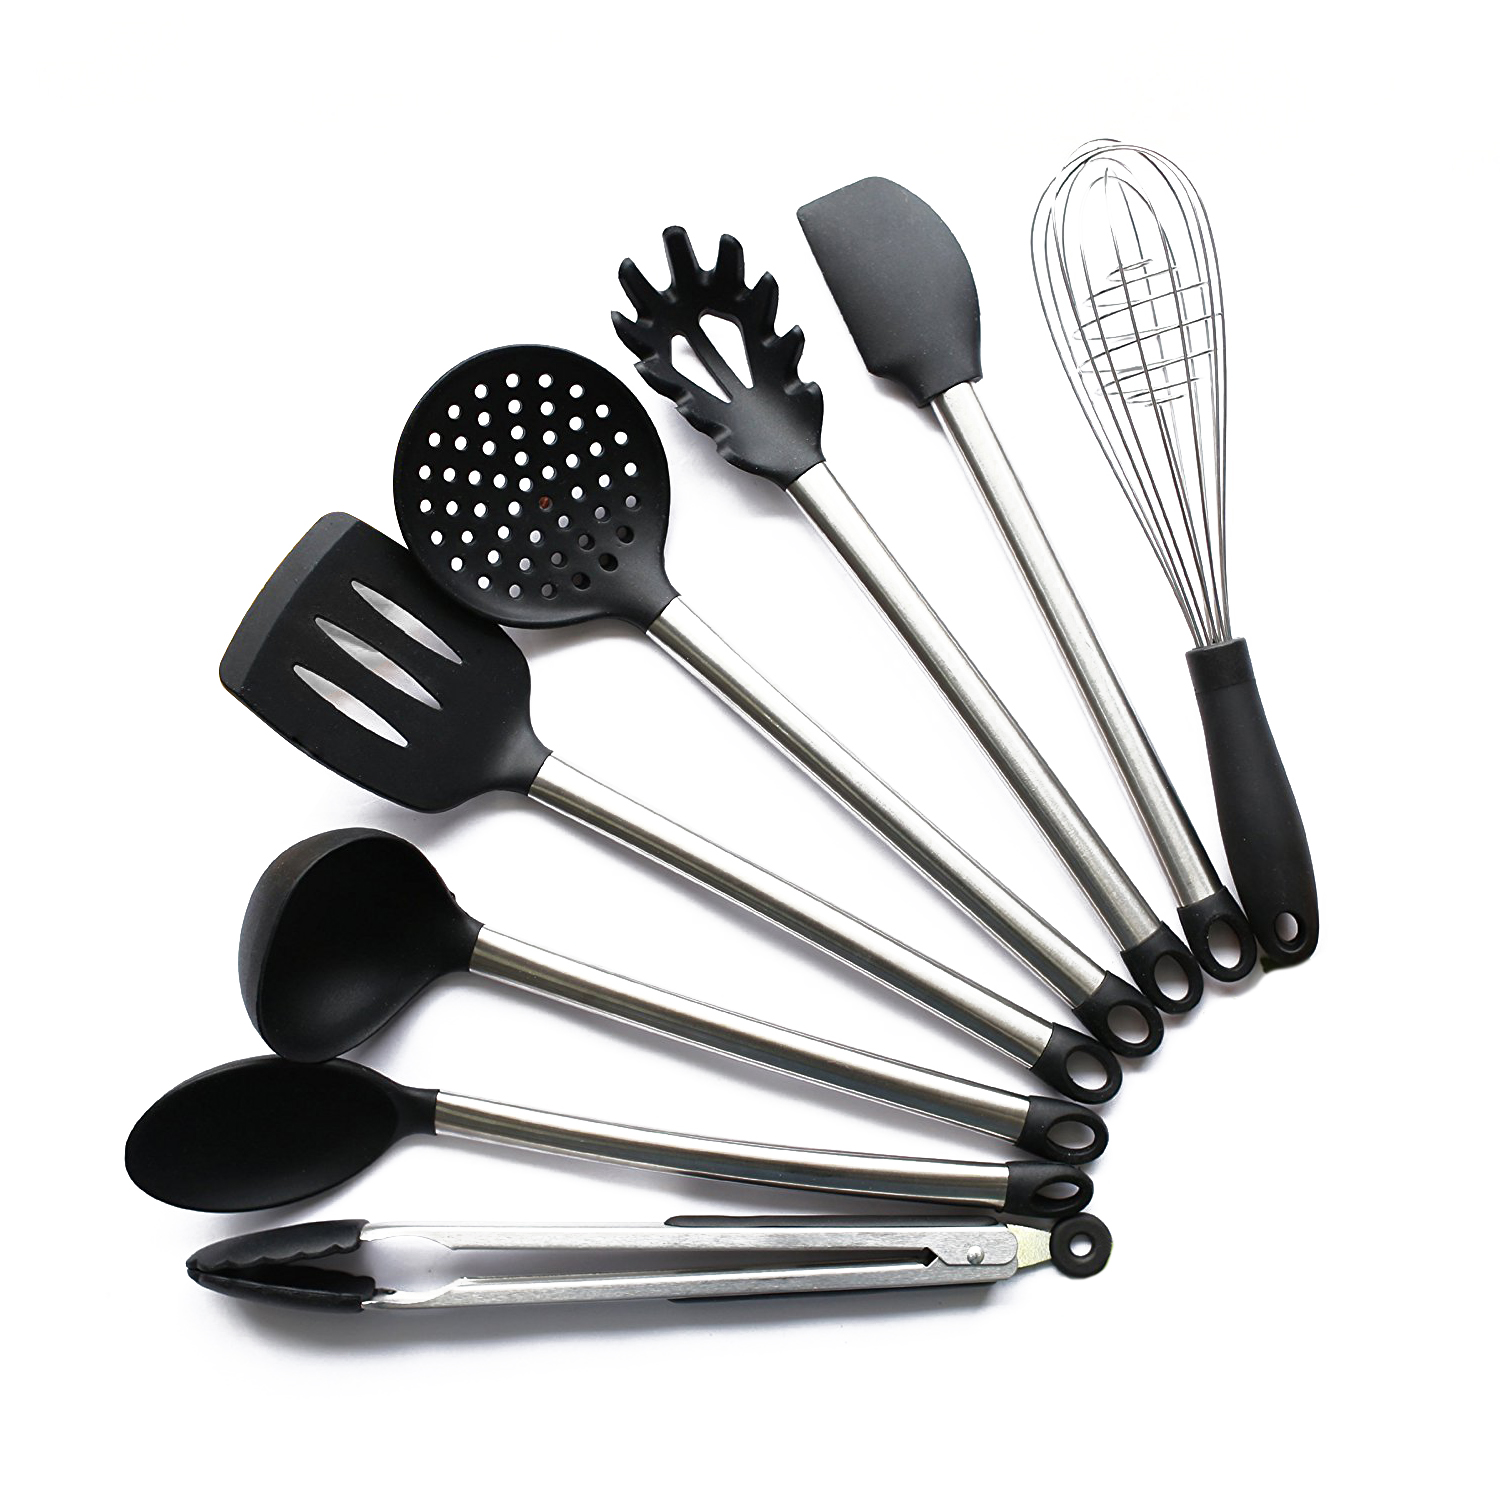 8 piece kitchen utensil set stainless steel and black